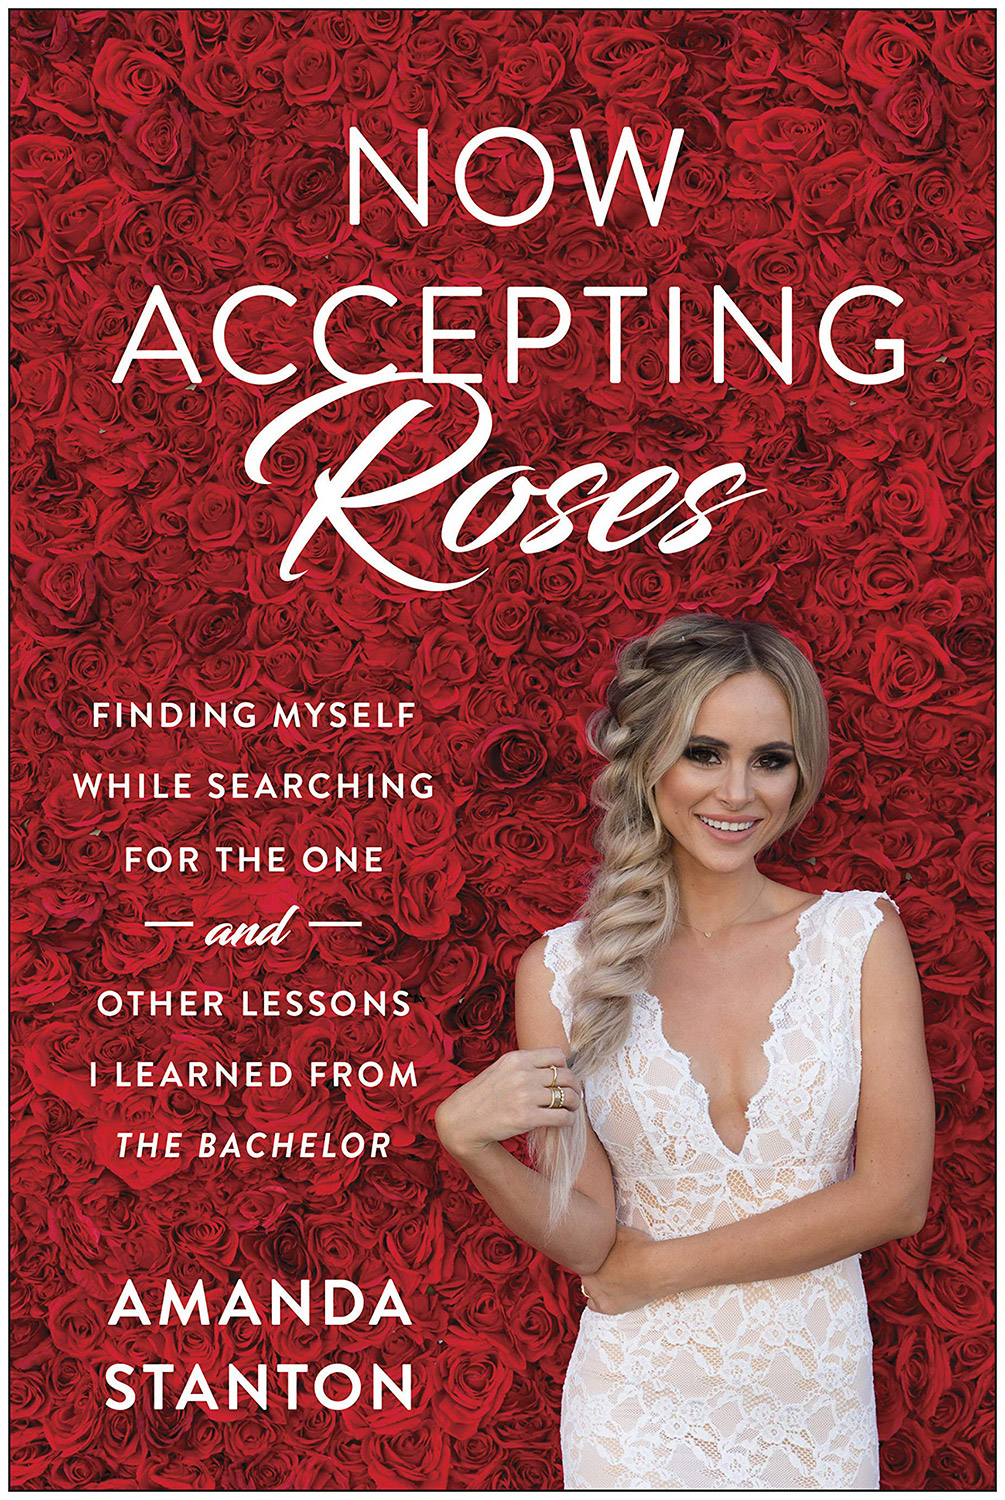 Now Accepting Roses: Finding Myself While Searching for the One . . . and Other Lessons I Learned from  The Bachelor  by Amanda Stanton